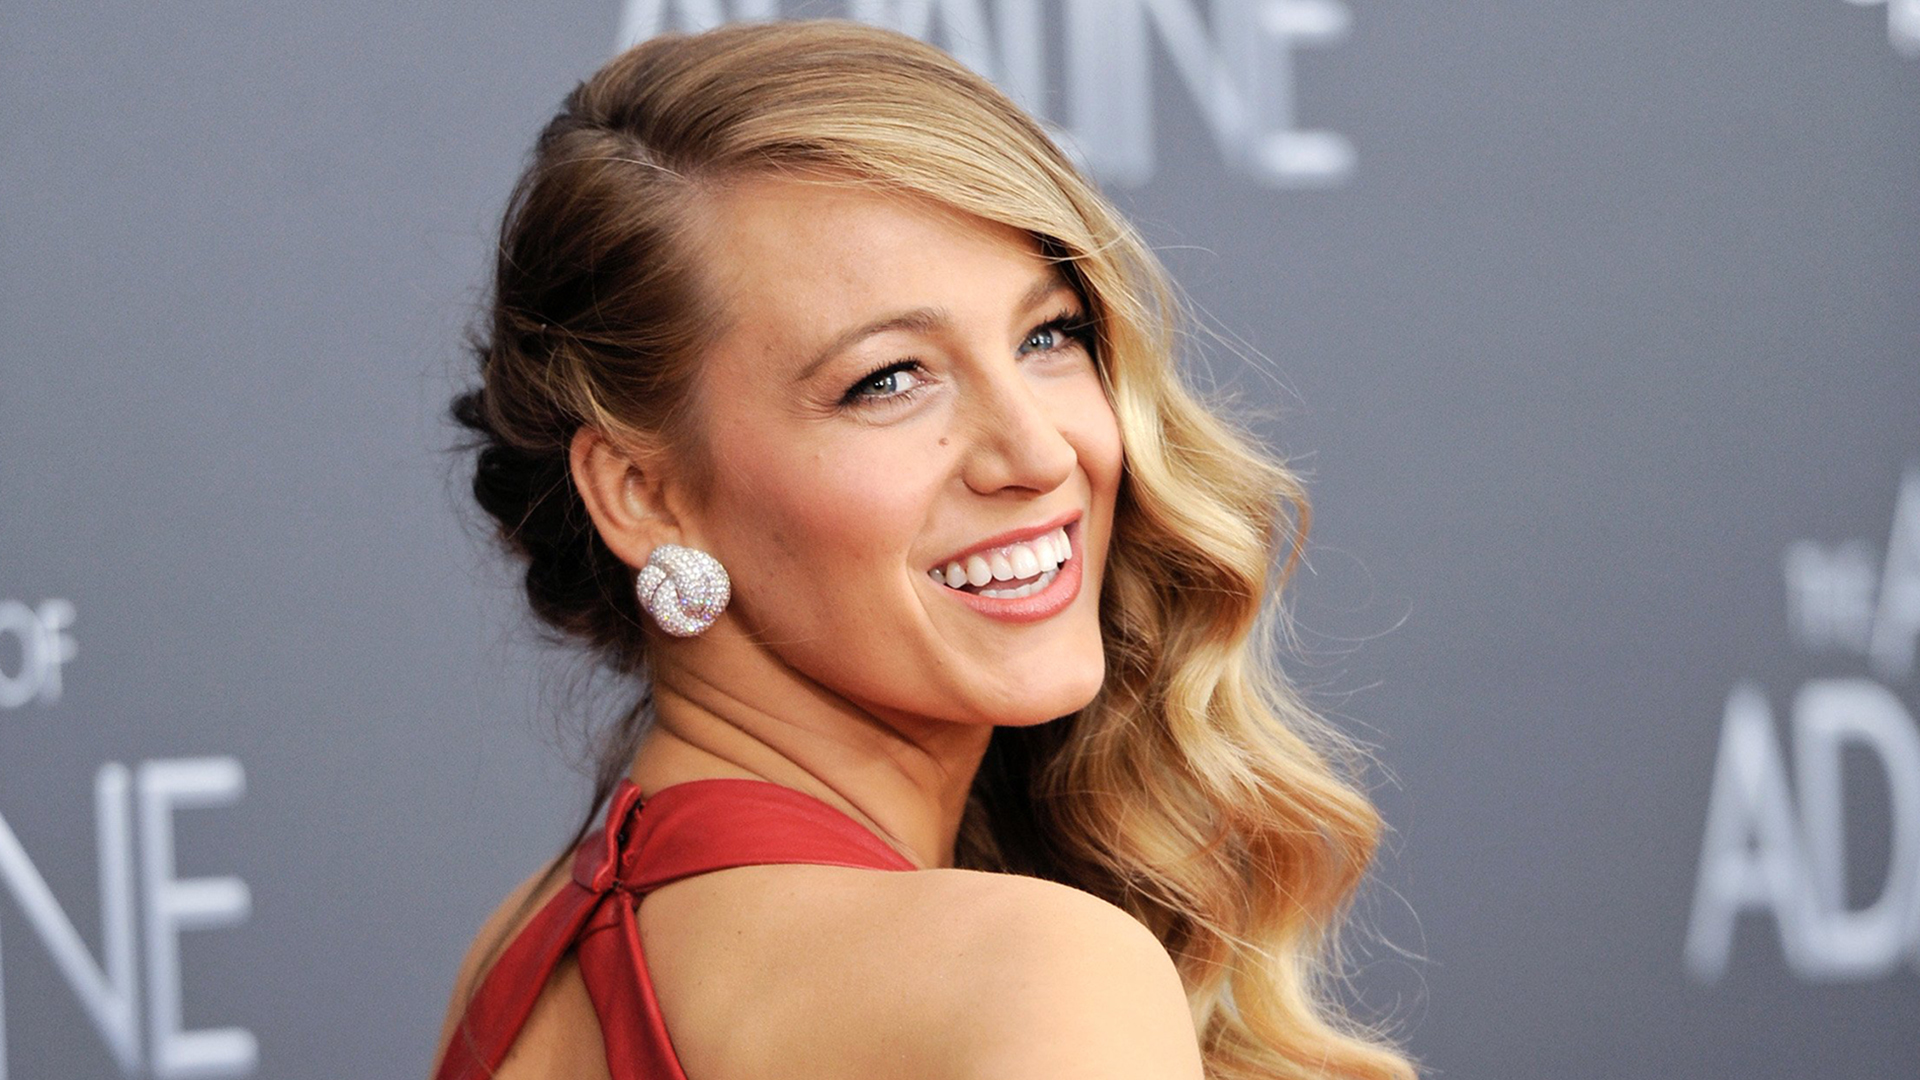 Blake Lively High Quality Wallpapers